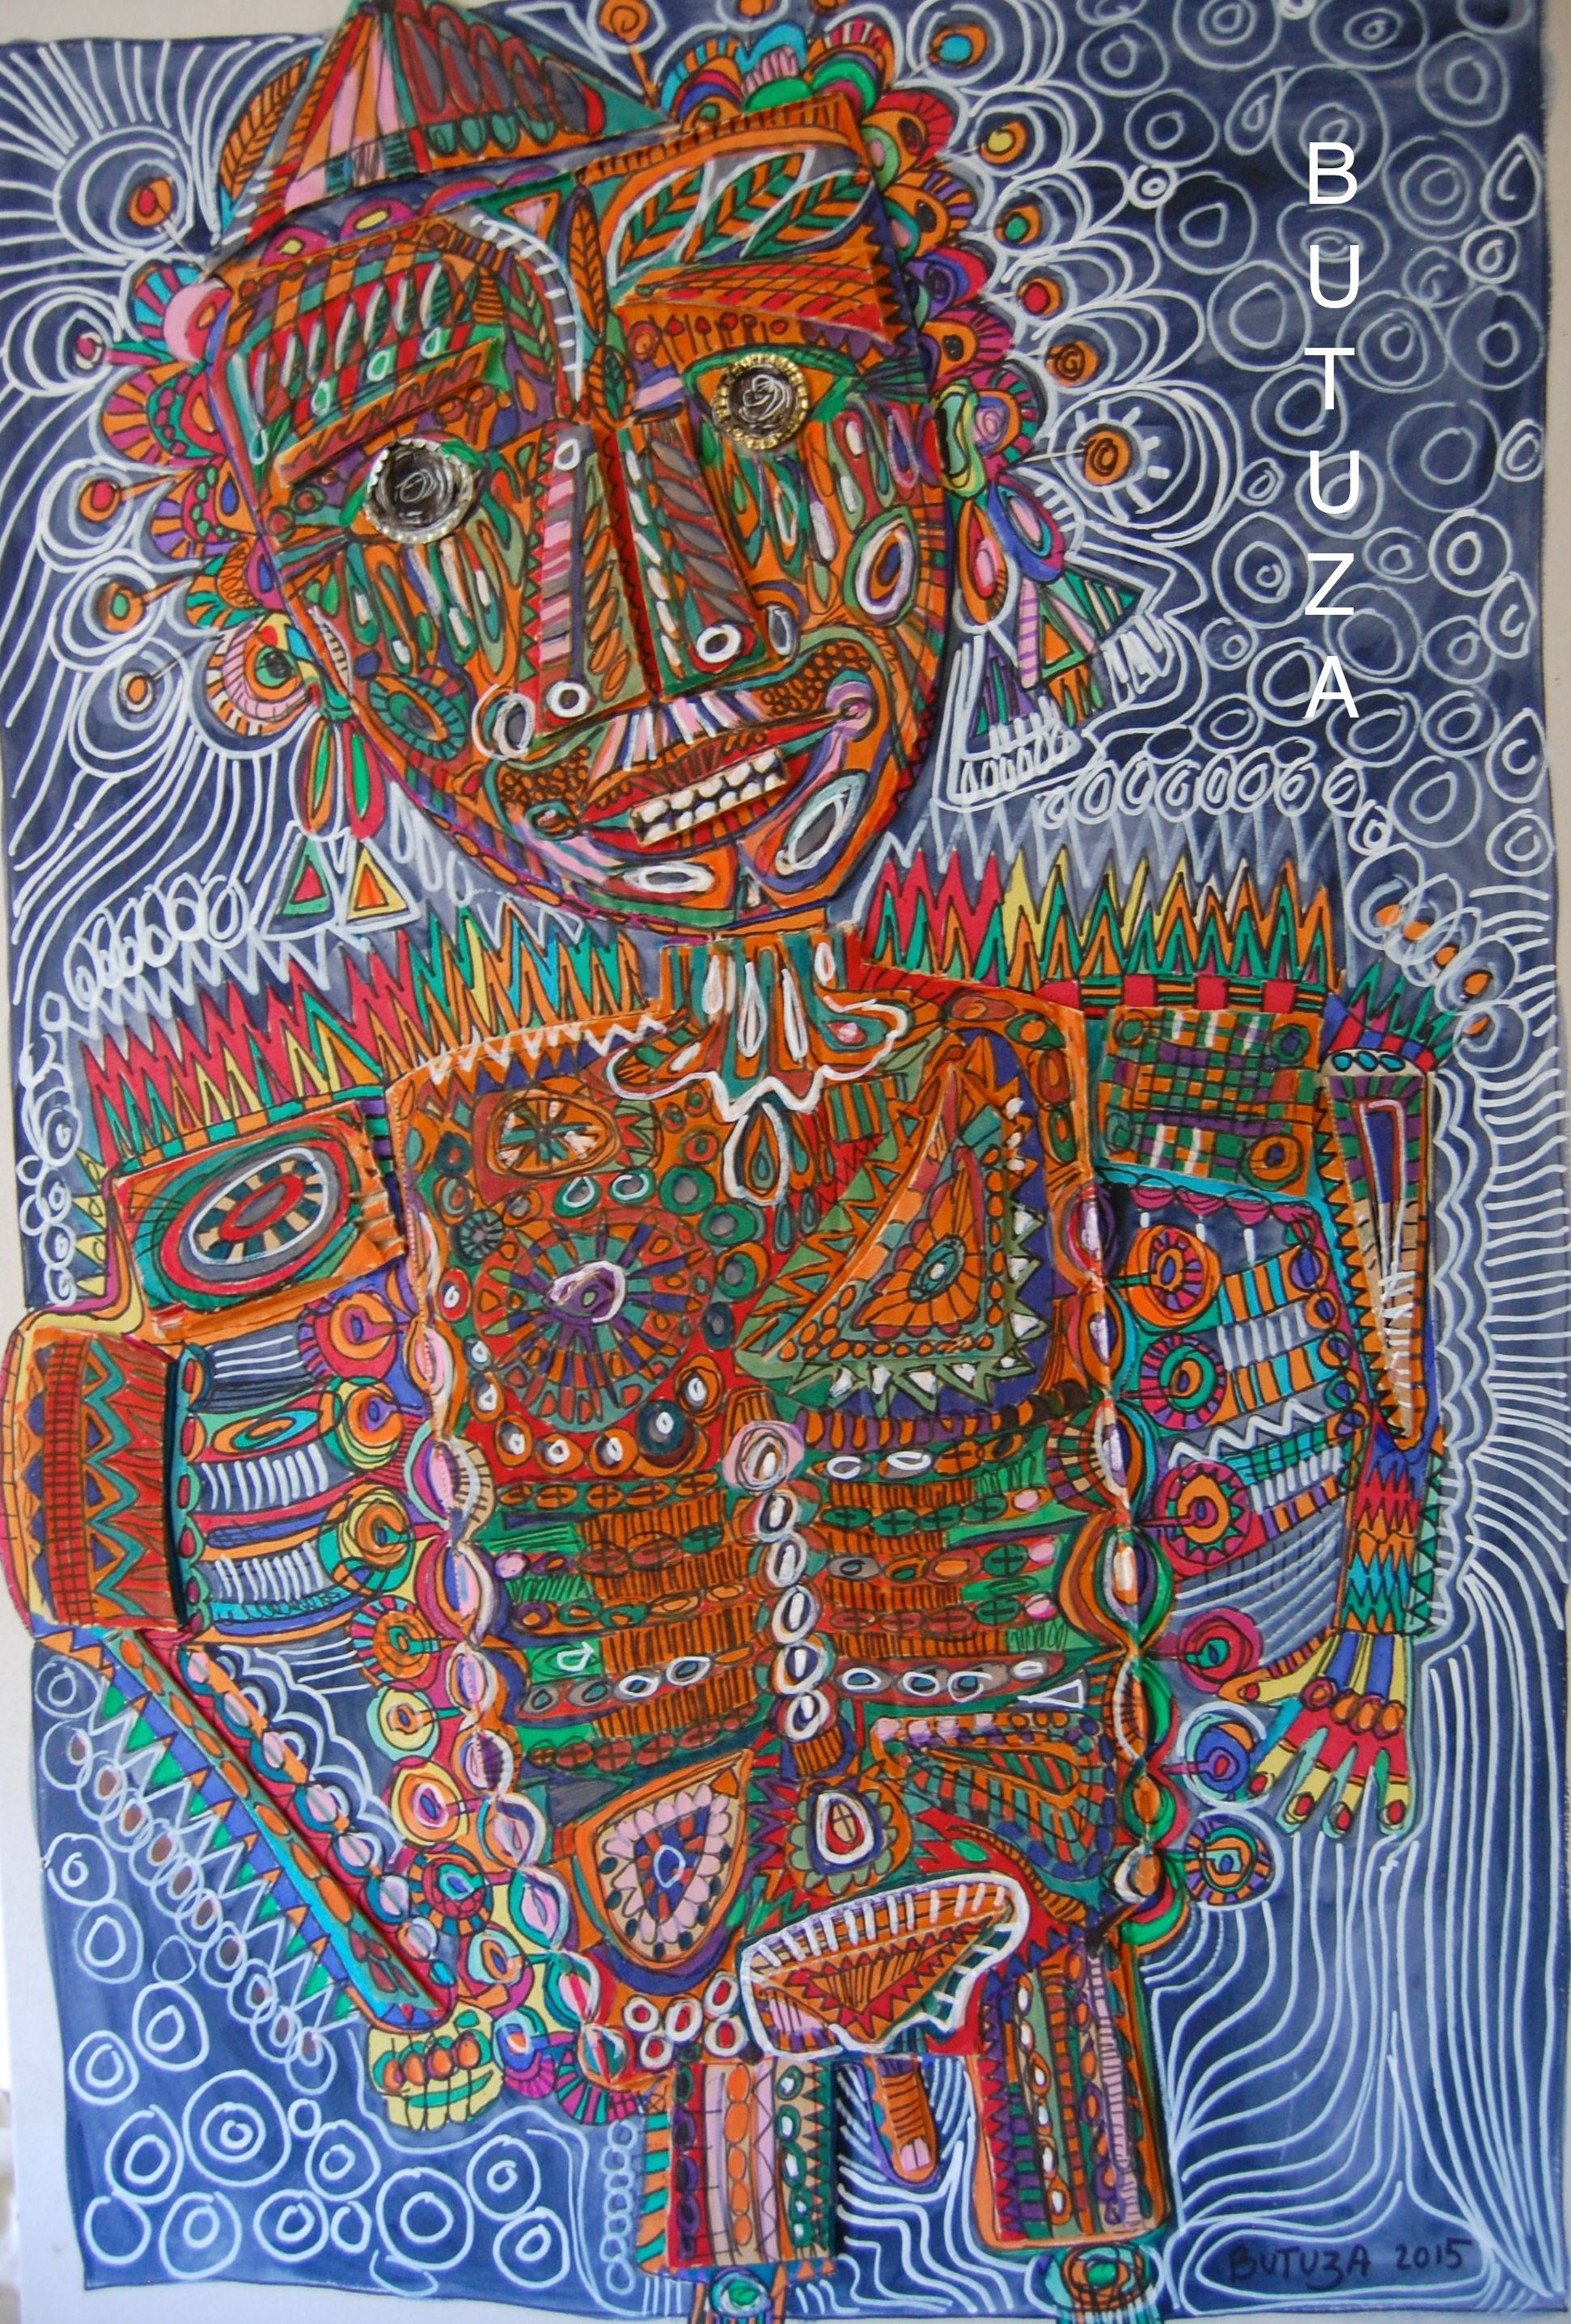 Swiss Artis Painter | Painted by Cathy Butuza  #outsiderart #artbrut #facesart #art #artist #artistic #illustration #illustrationart #drawing #sketches